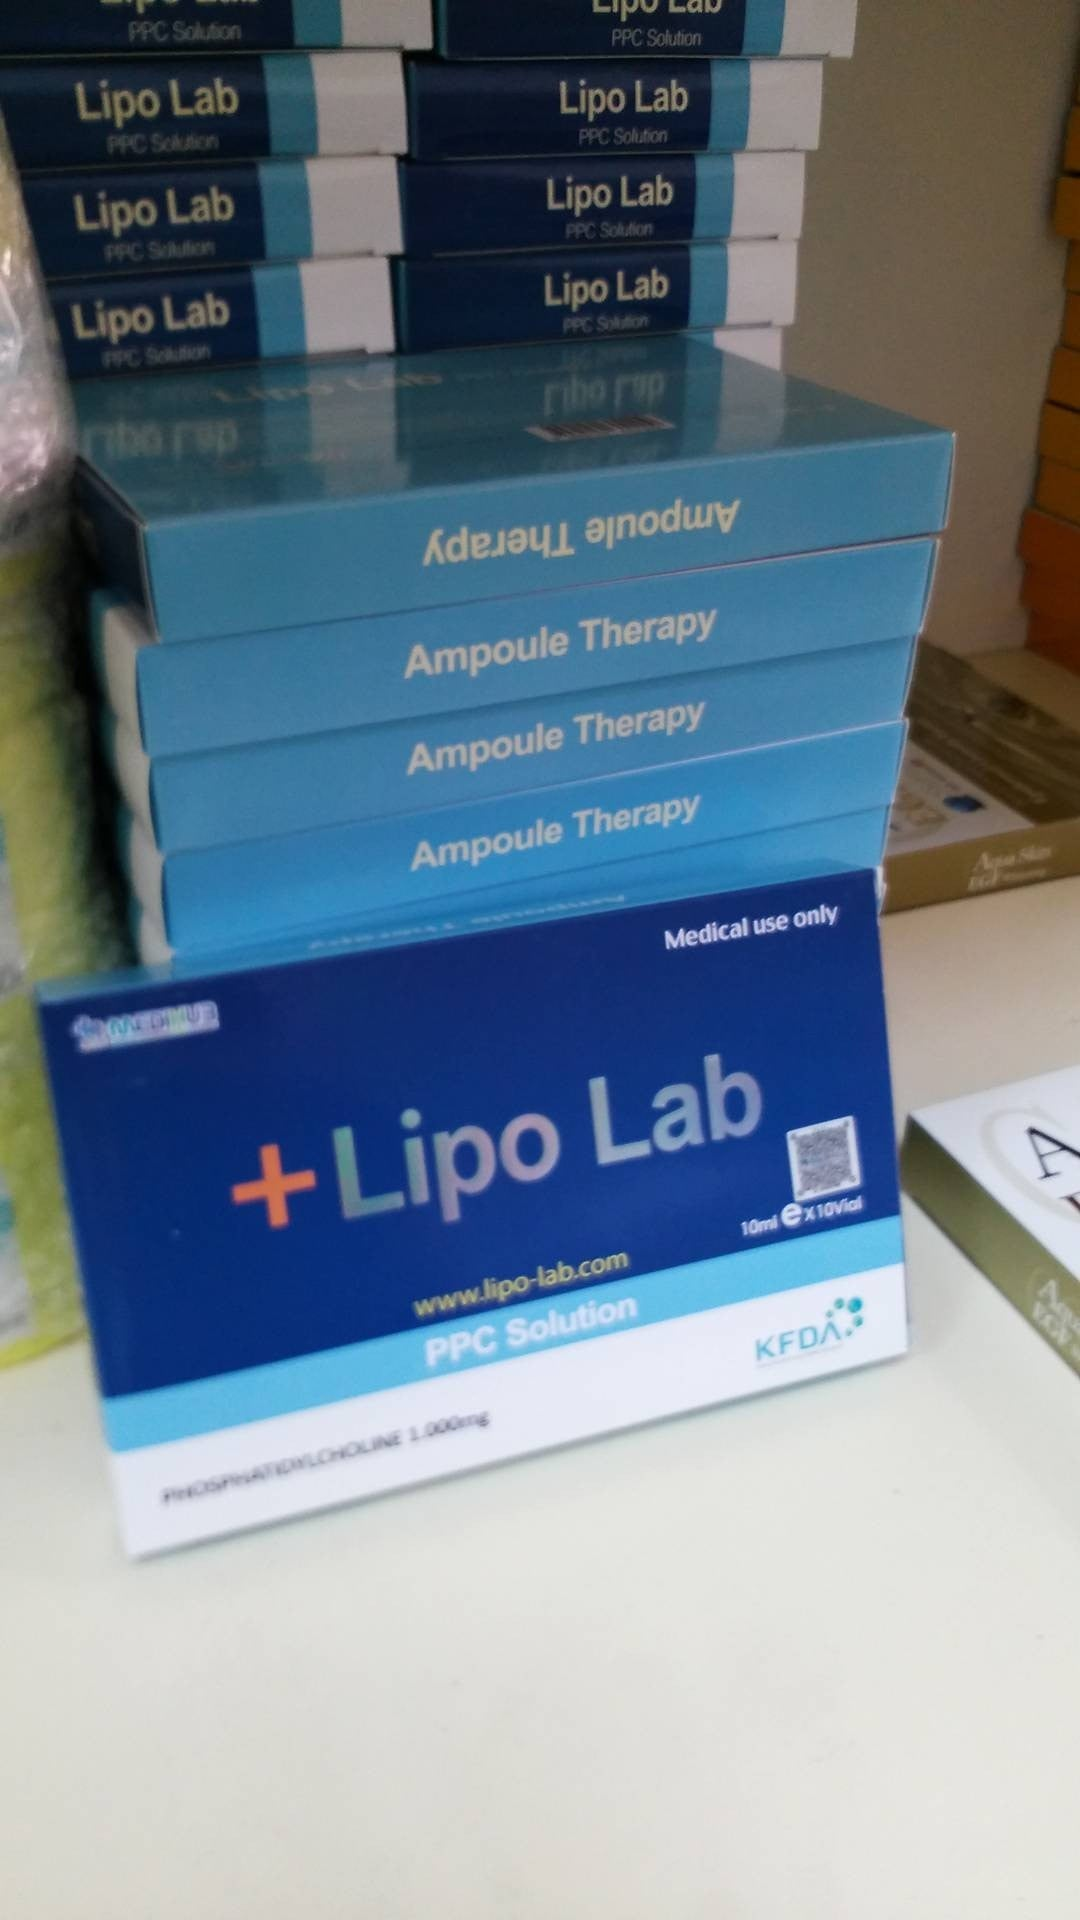 Lipo Lab Meso-Therapy - Simple Mello